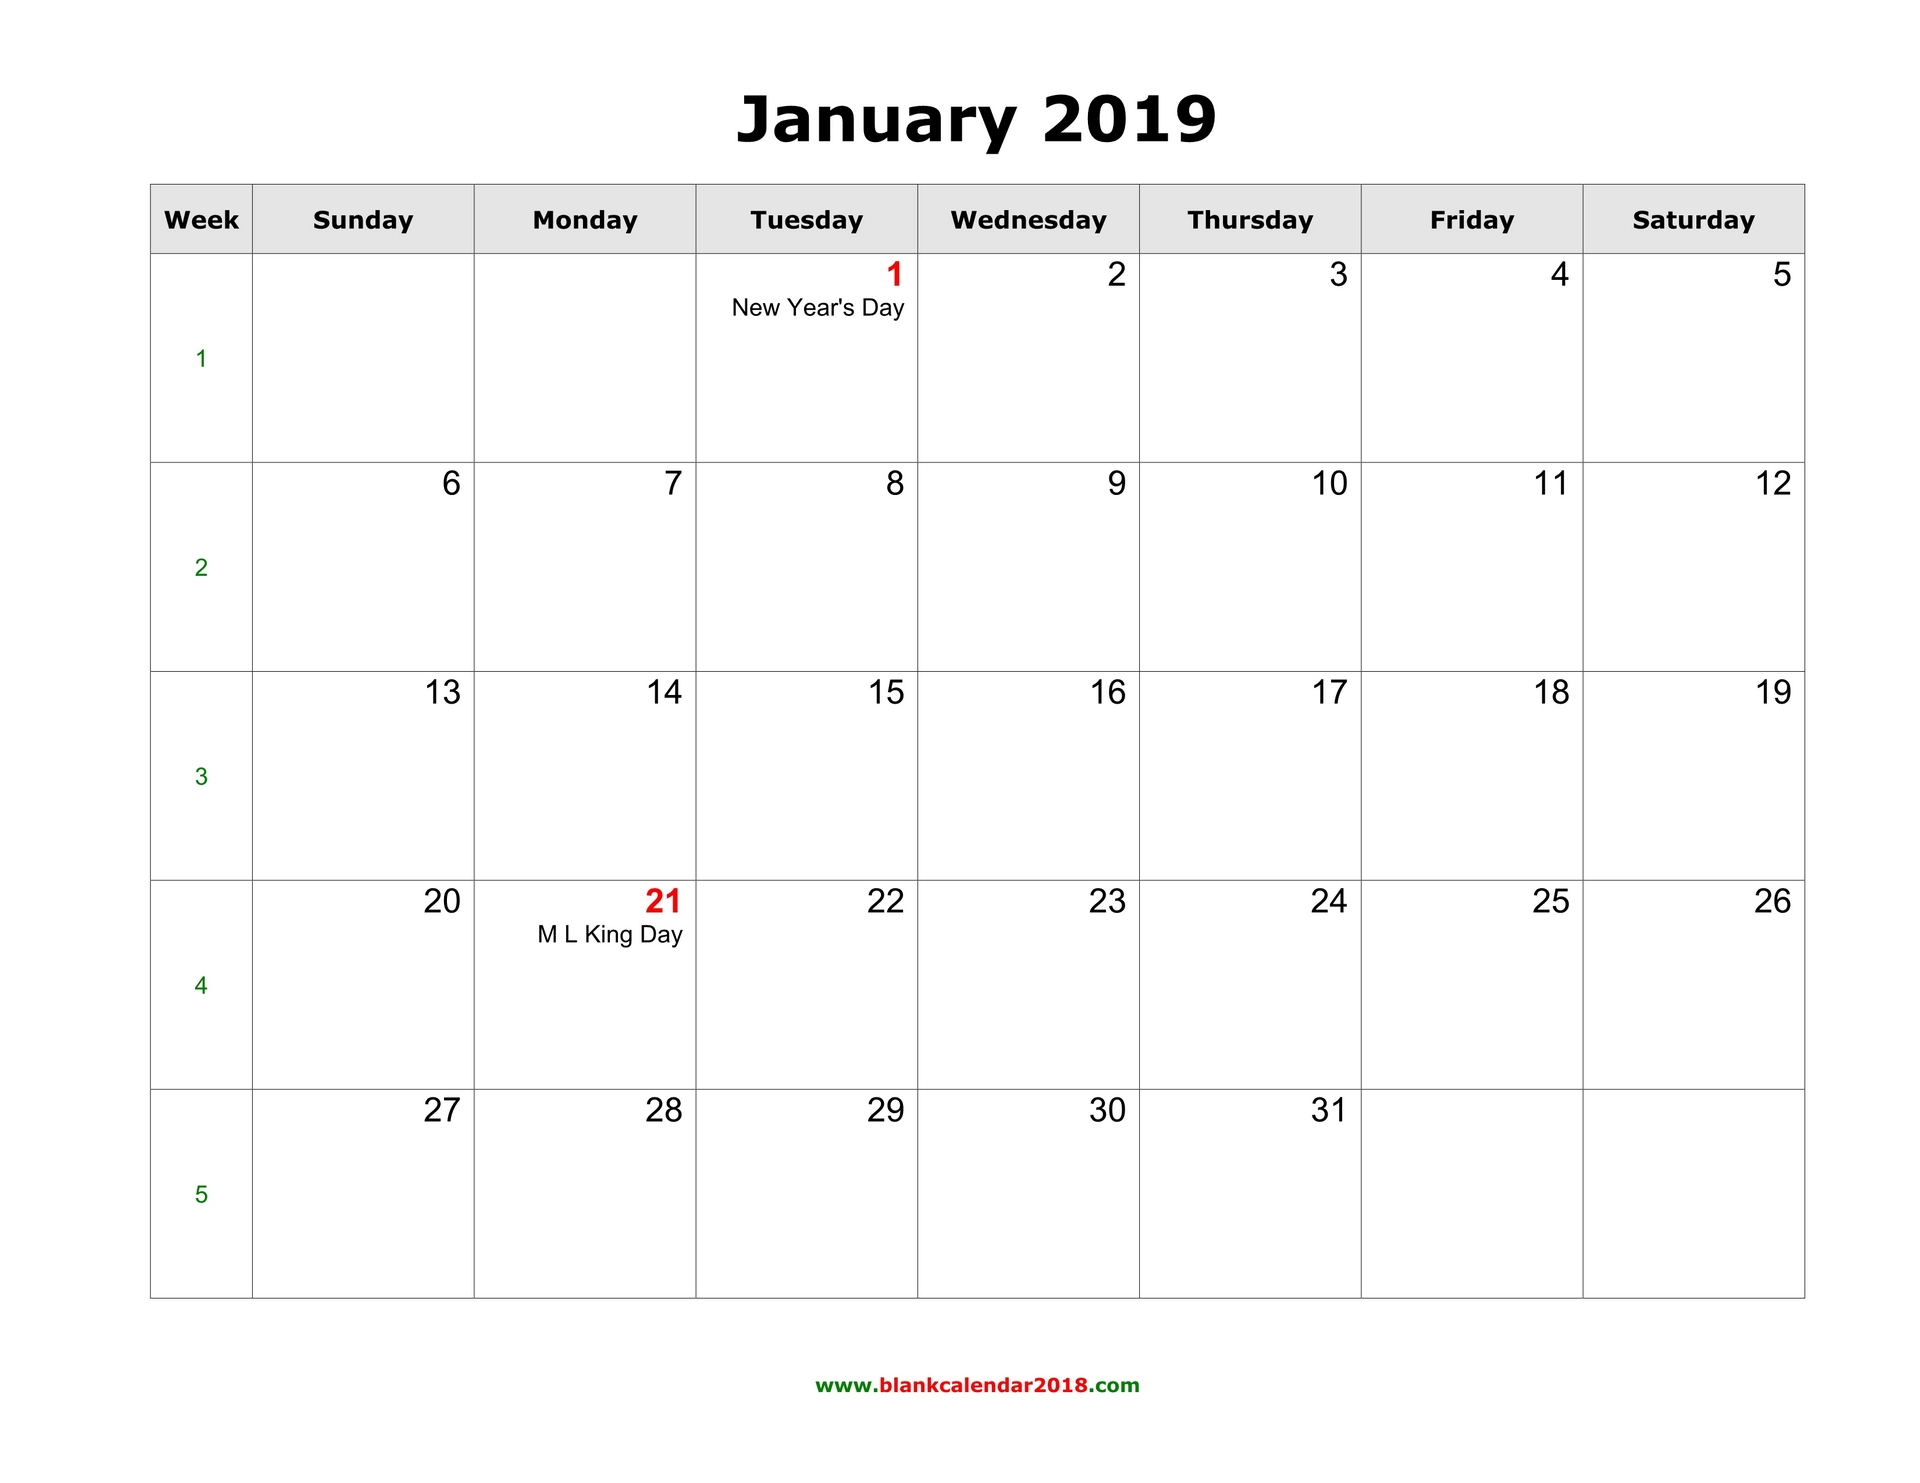 2019 Calendar Printable Microsoft Word Blank Calendar for January 2019